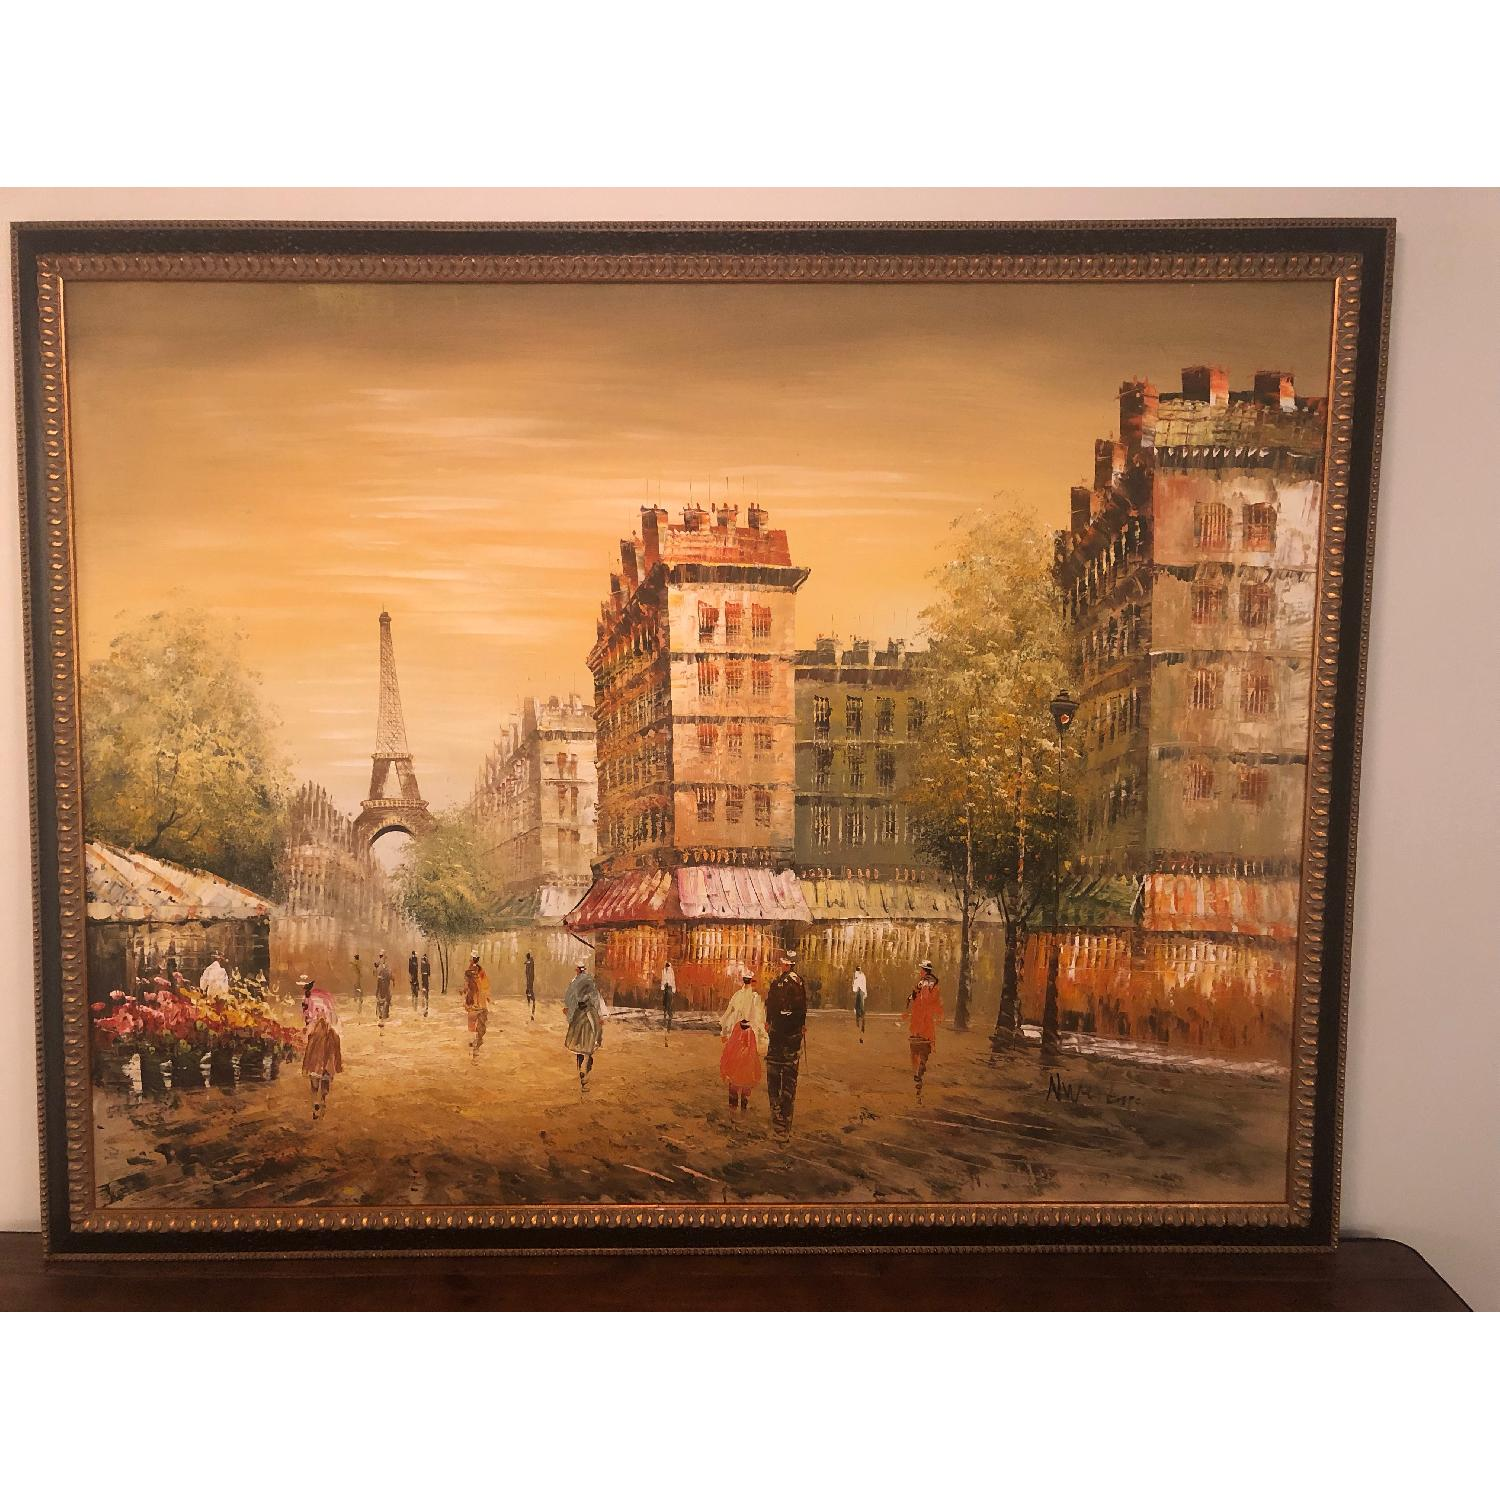 Framed Paris Painting - image-1